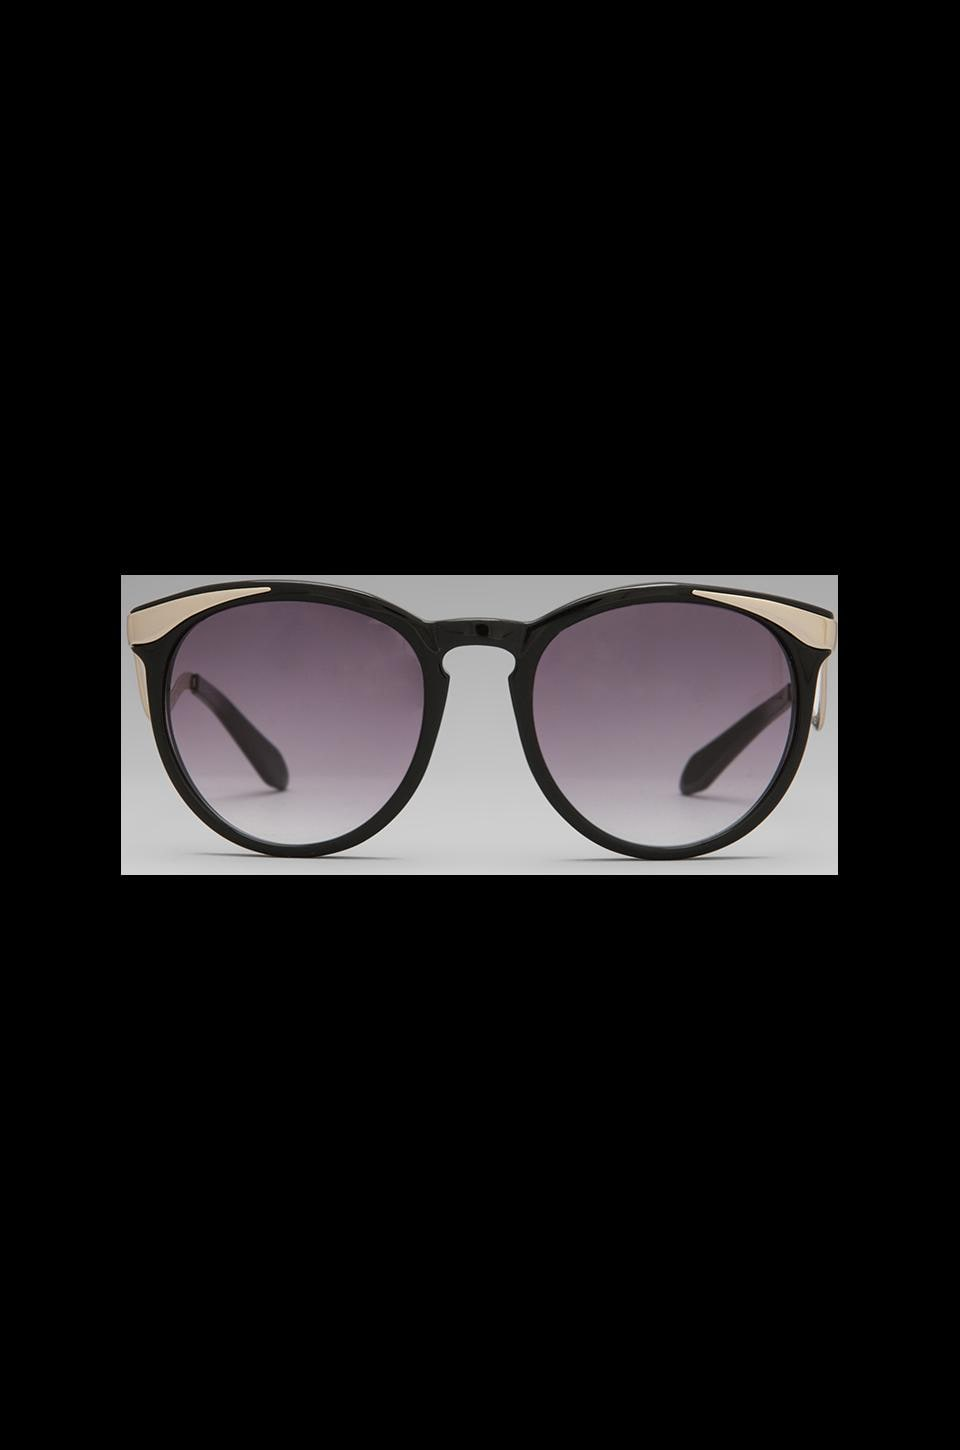 House of Harlow 1960 House of Harlow Mia Sunglasses in Black